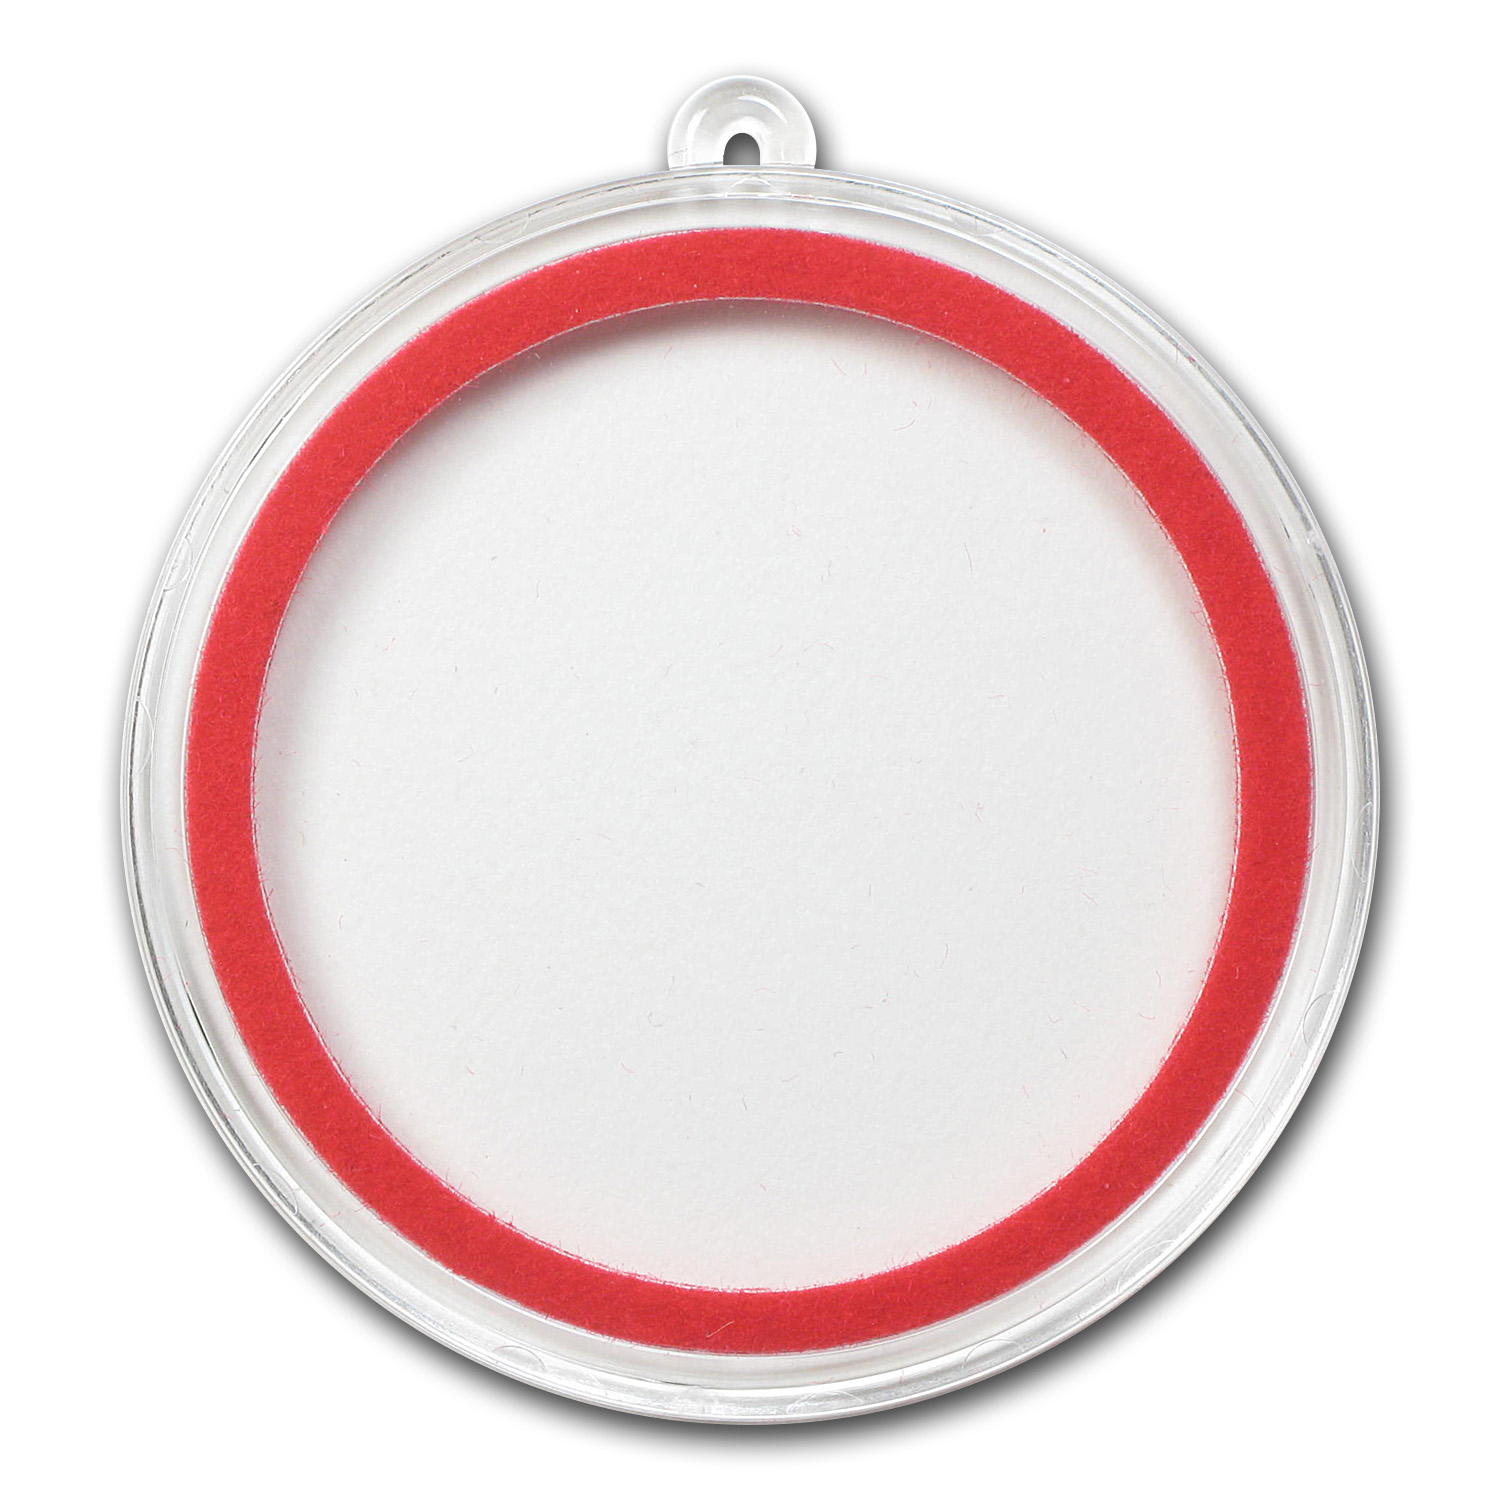 Ornament Capsule (40mm) - Red Ring